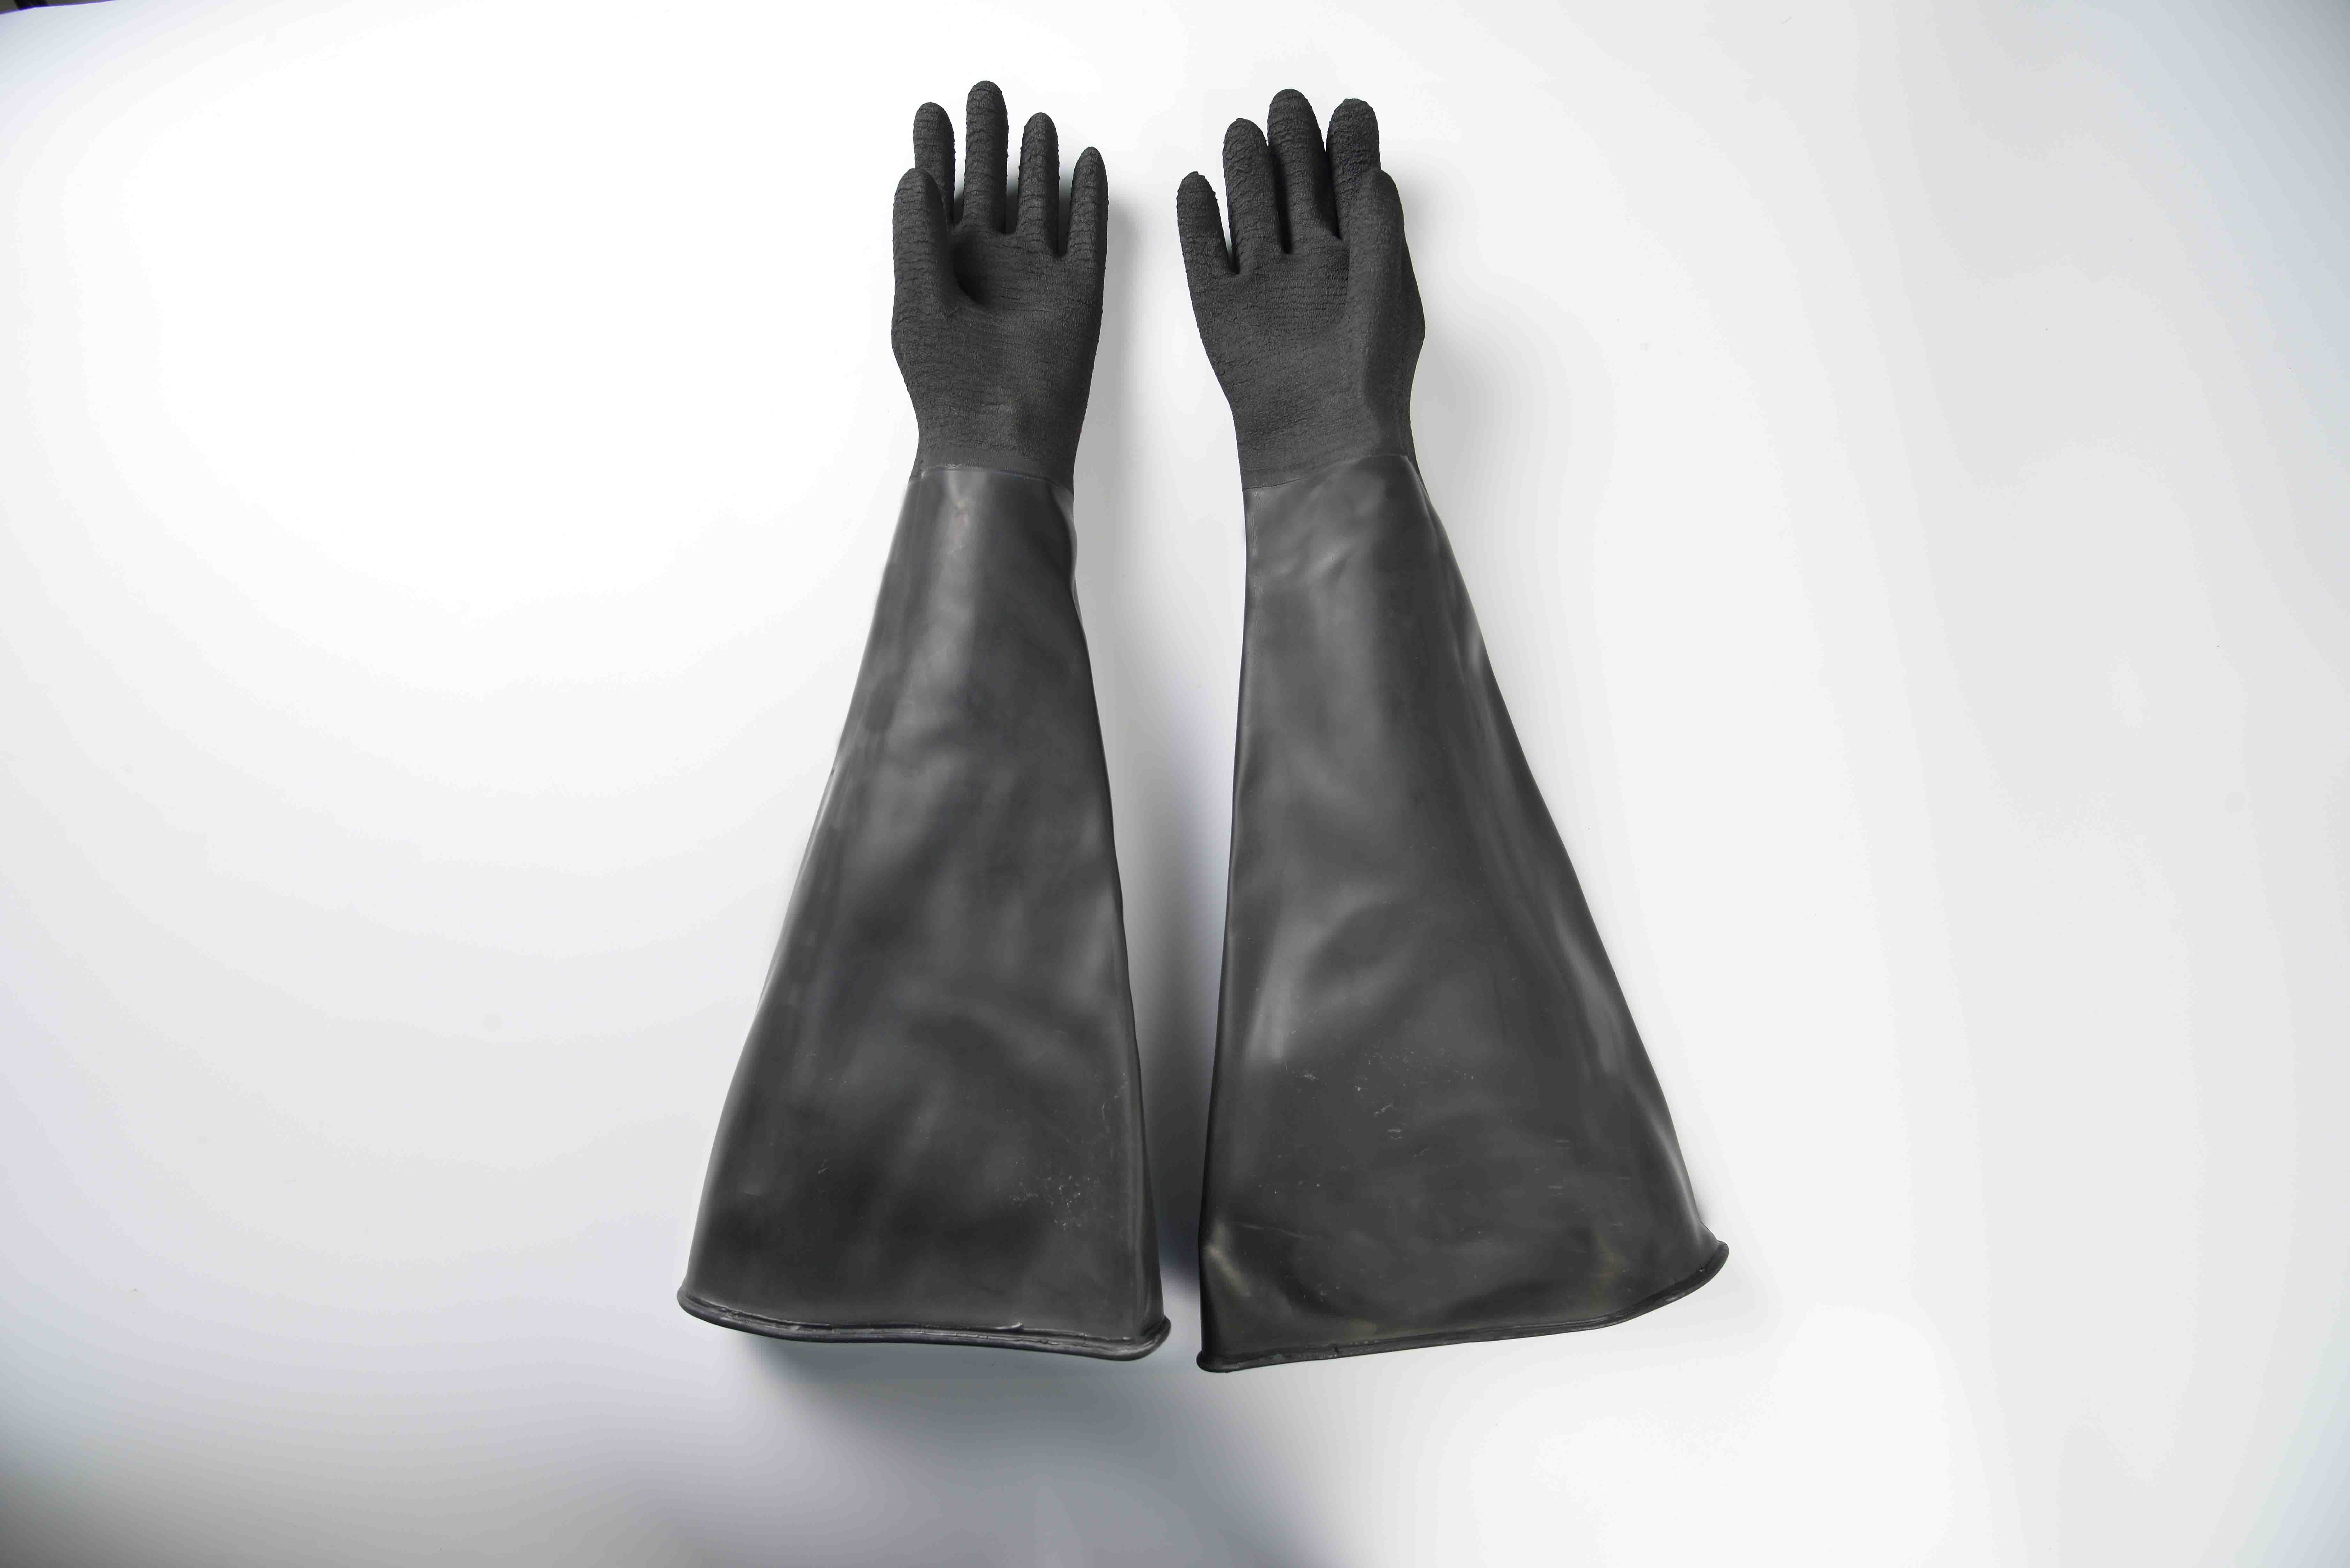 2016 High quality 26″ Industrial rubber glove-rough finish Montreal Supplier